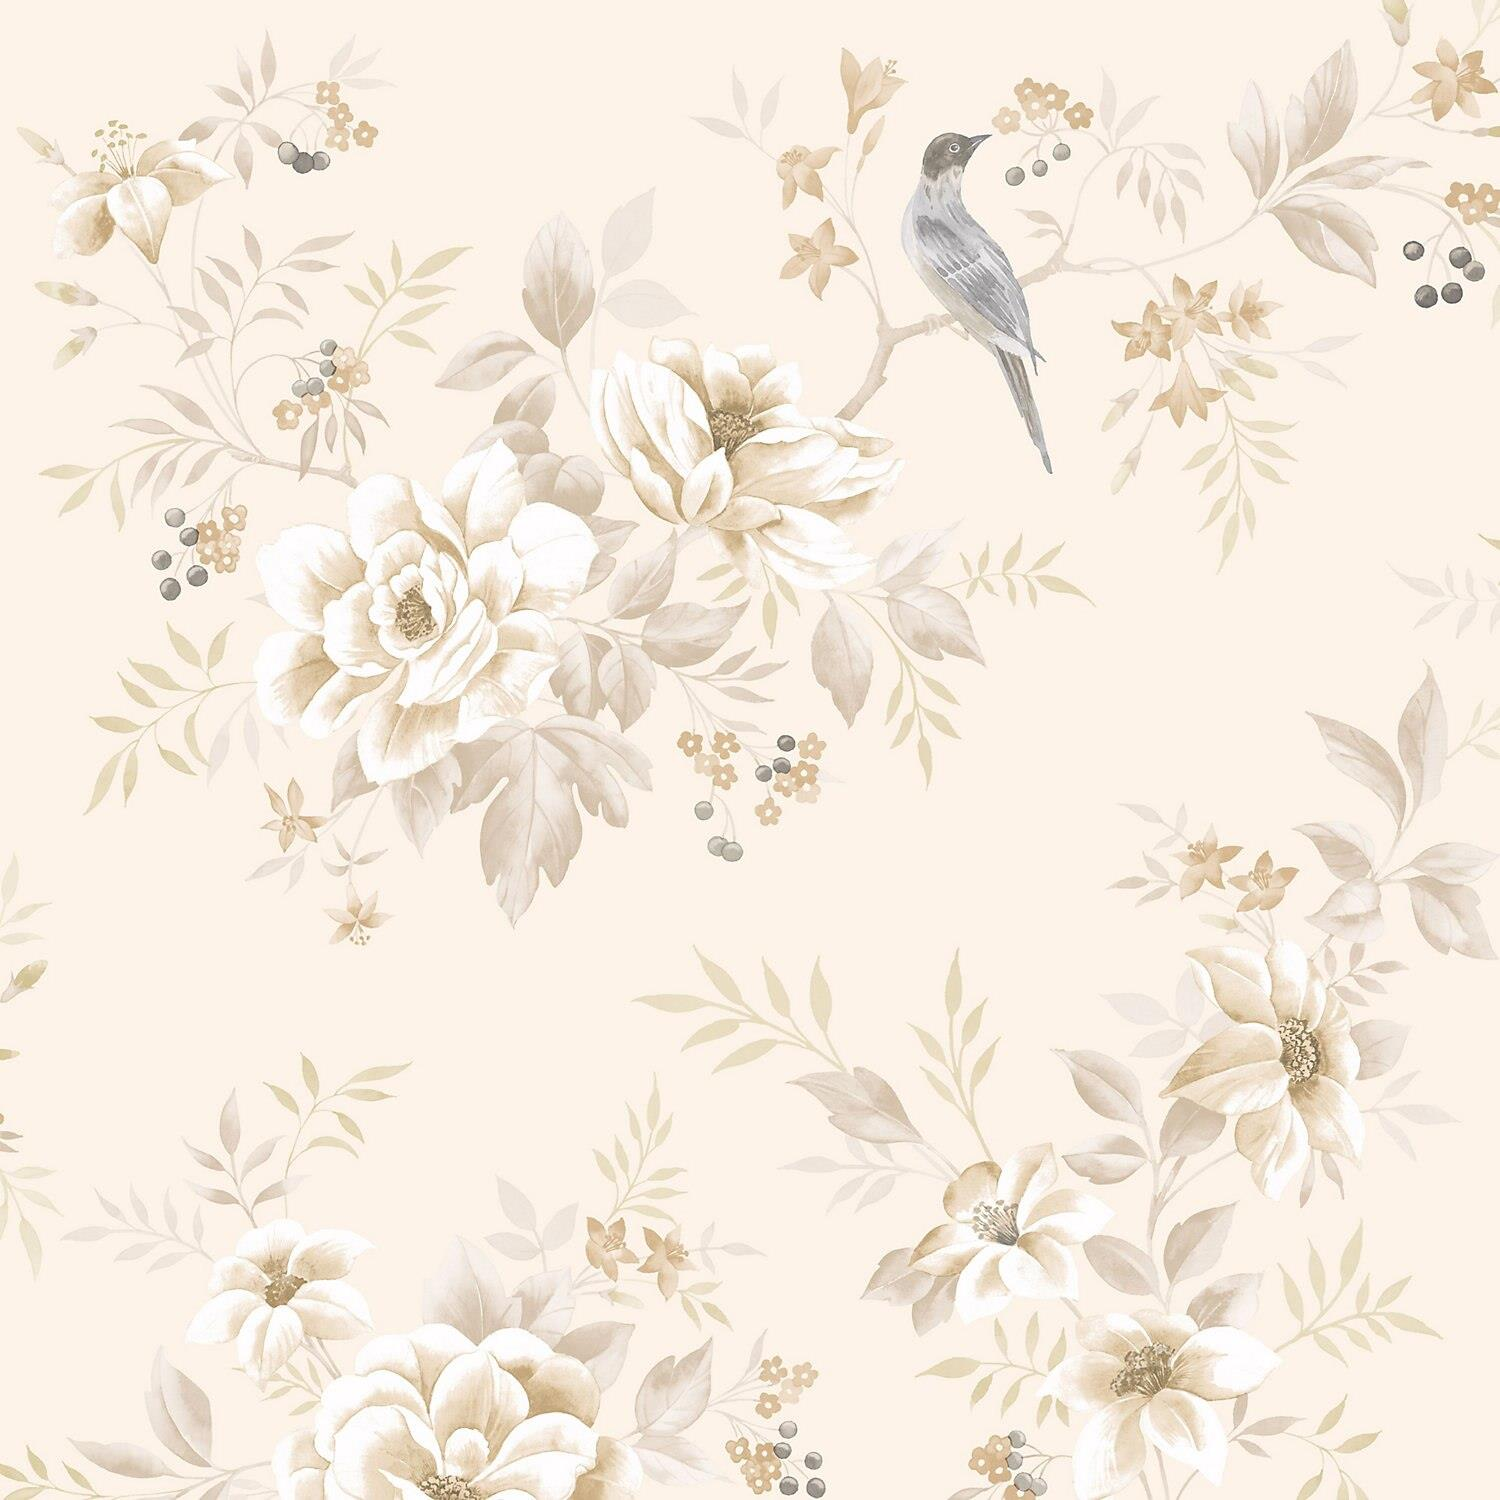 Fine Decor Liora Natural Cream Beige Floral Glitter Wallpaper Leaf